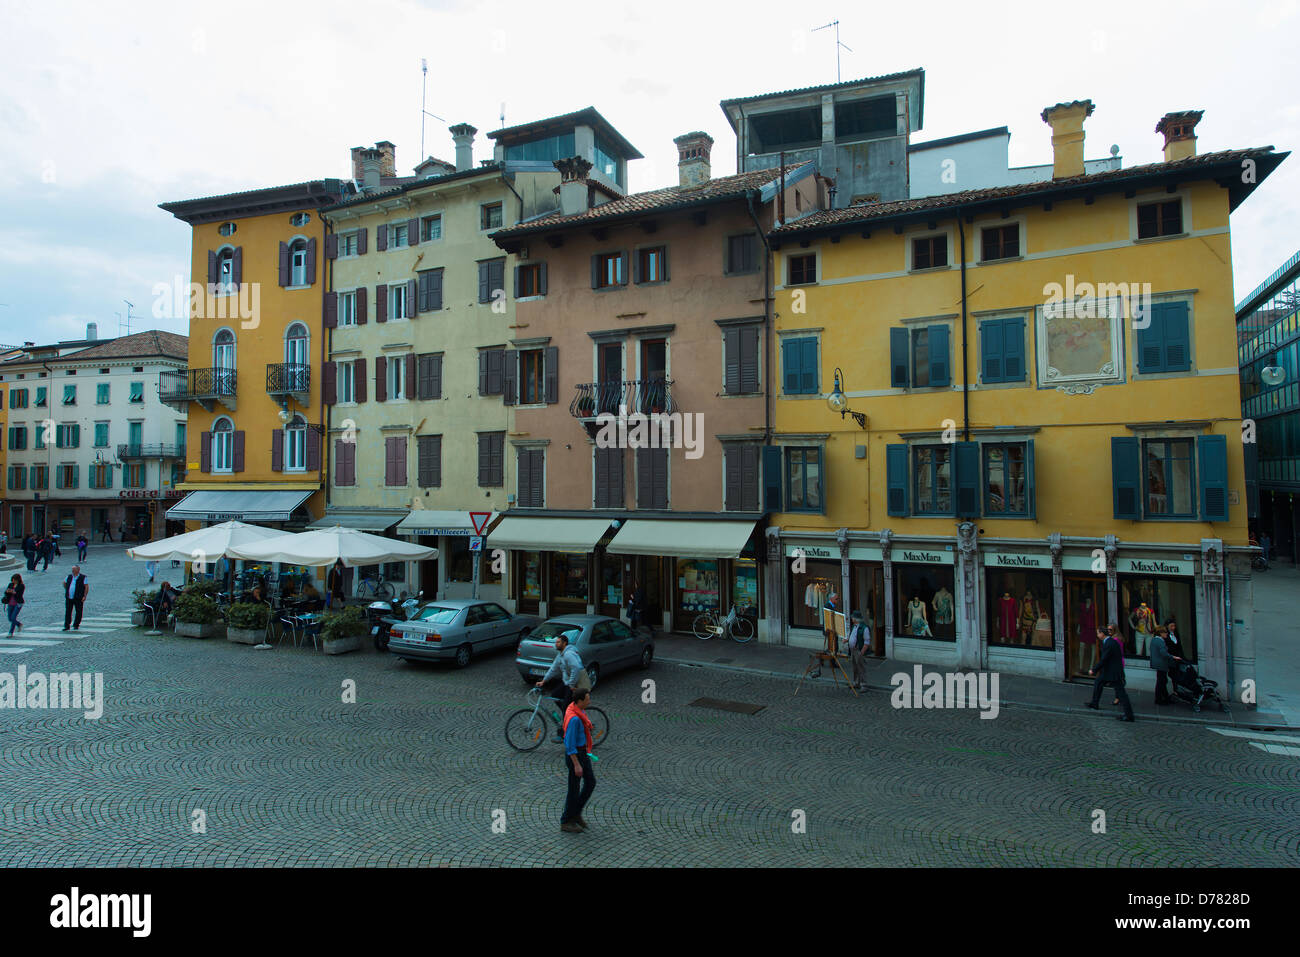 Houses in Piazza Libertà in Udine - Stock Image